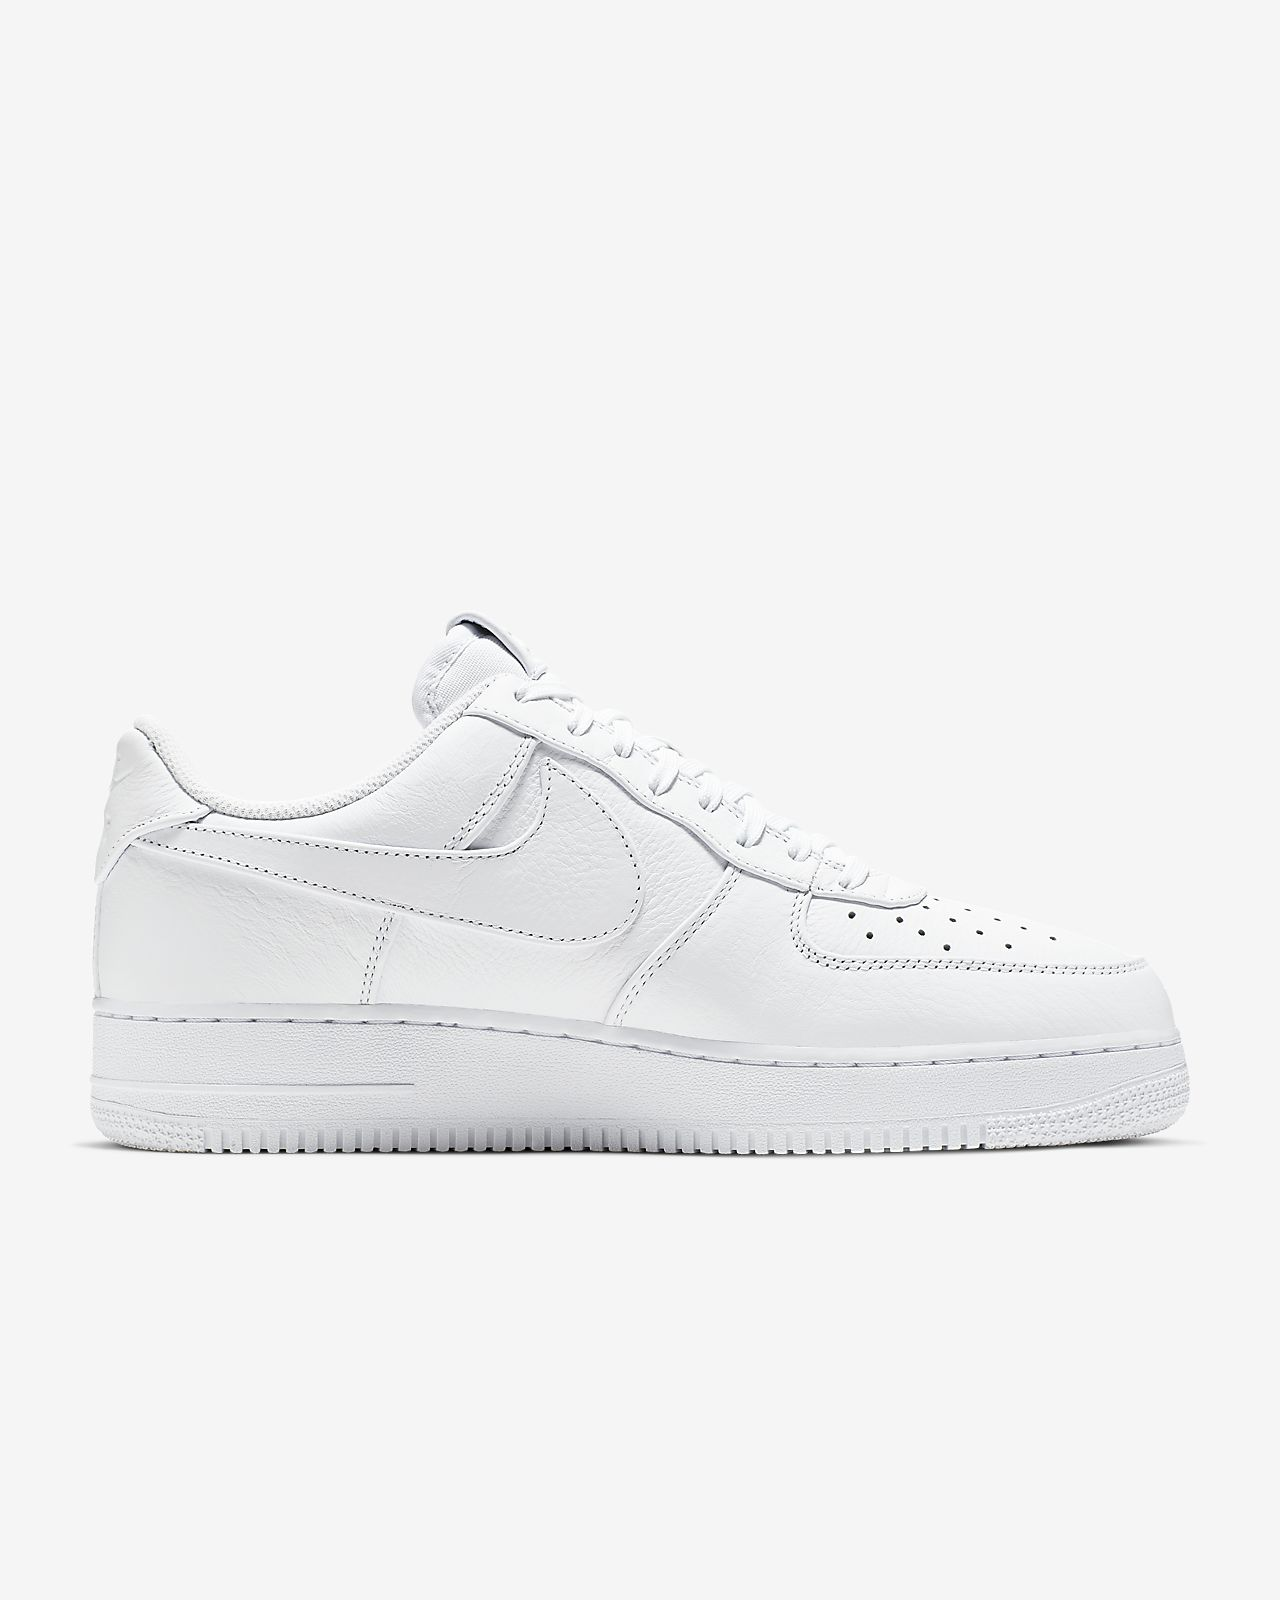 c700175104 Nike Air Force 1 '07 Premium 2 Men's Shoe. Nike.com